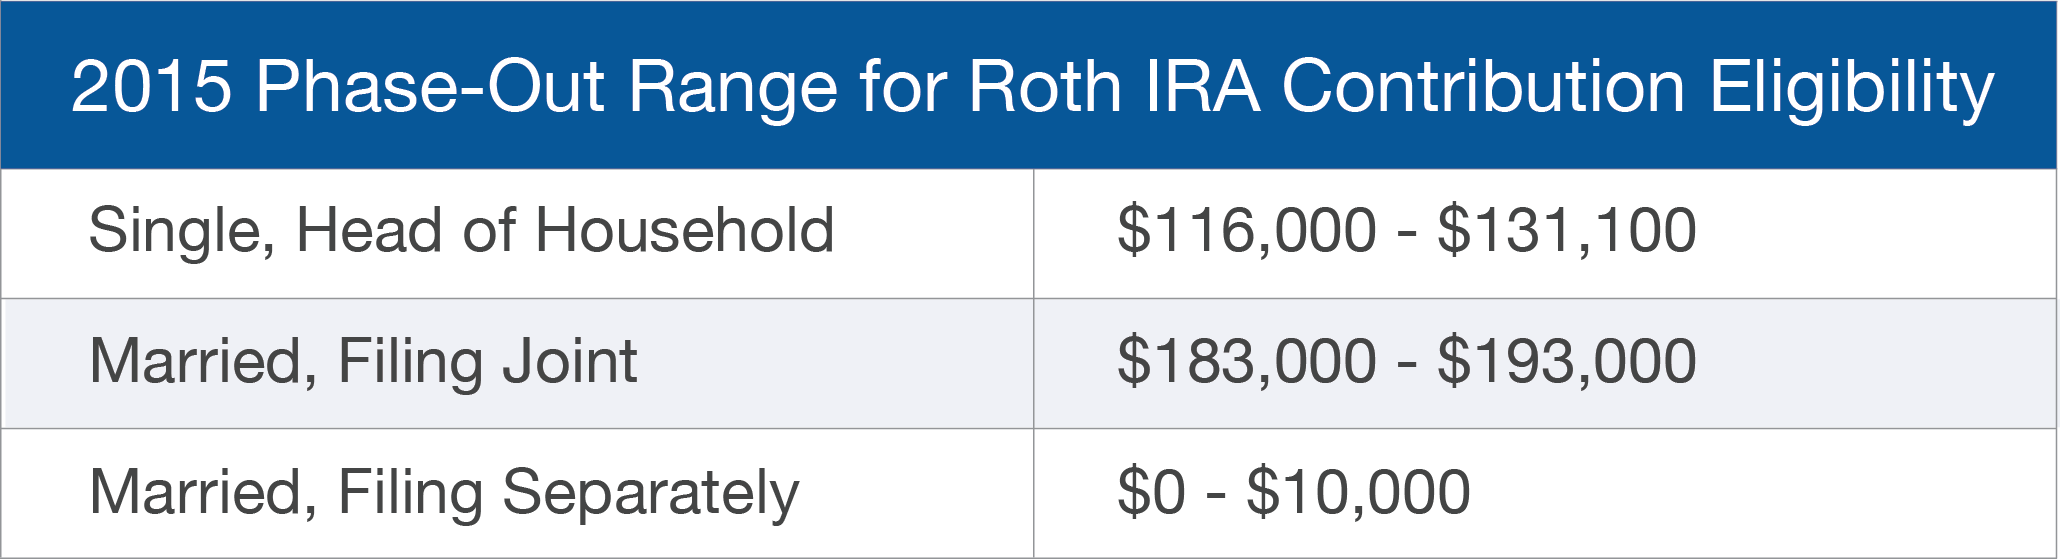 single roth ira income limits 2013 Ira contribution limits for 2012 and 2013 183,000 of agi for joint filers and from $110,000 to $125,000 for single roth ira contribution limits for 2013.